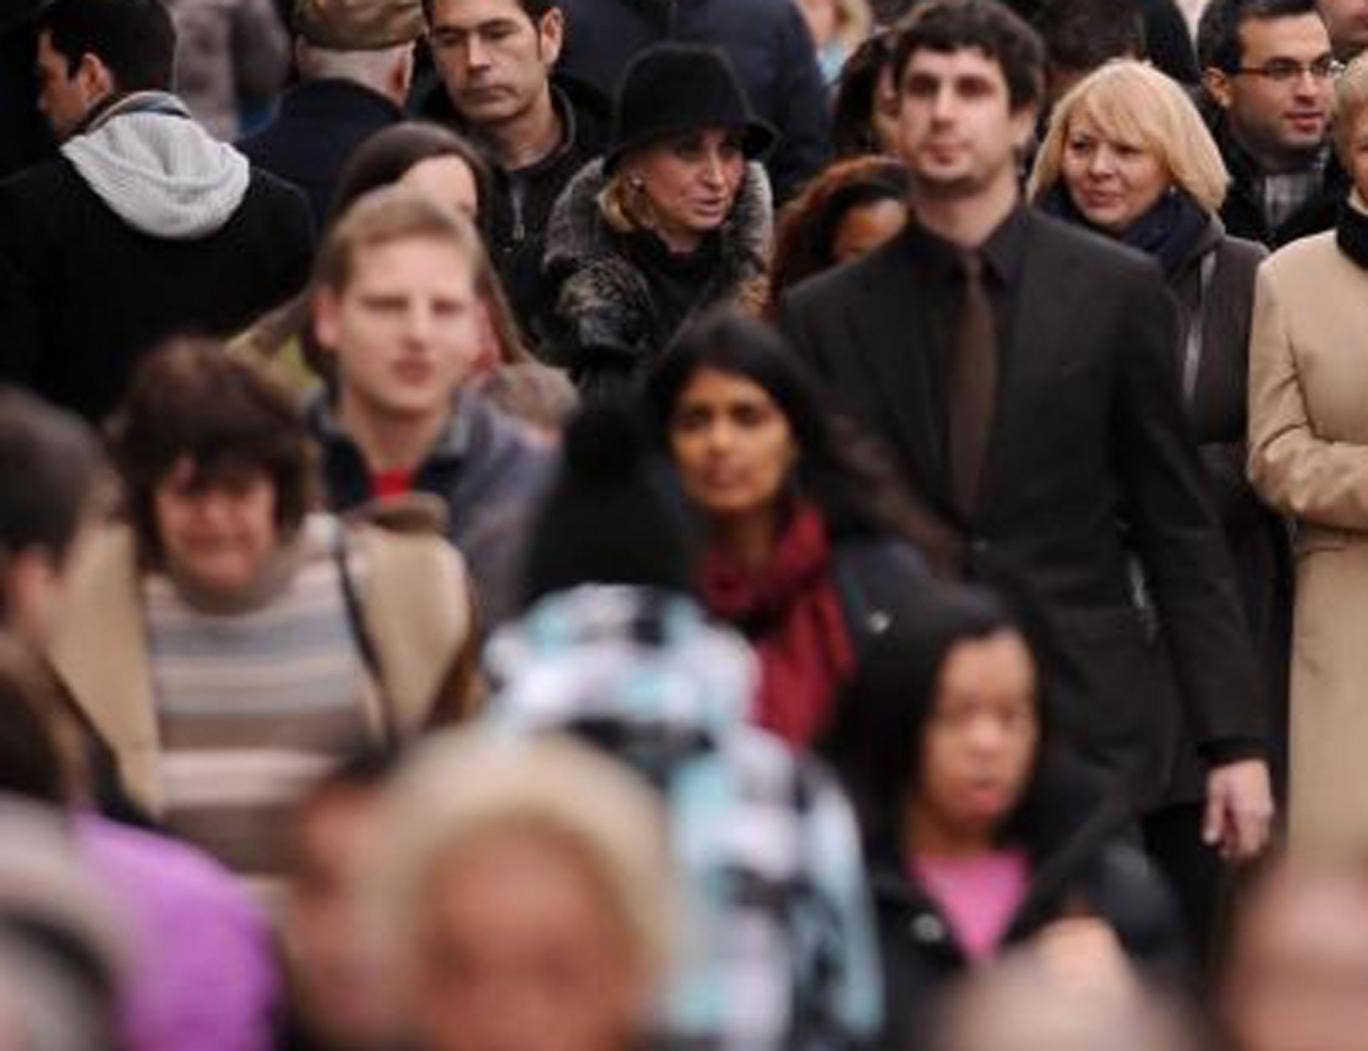 The UK's population grew more in the past year than any other in Europe